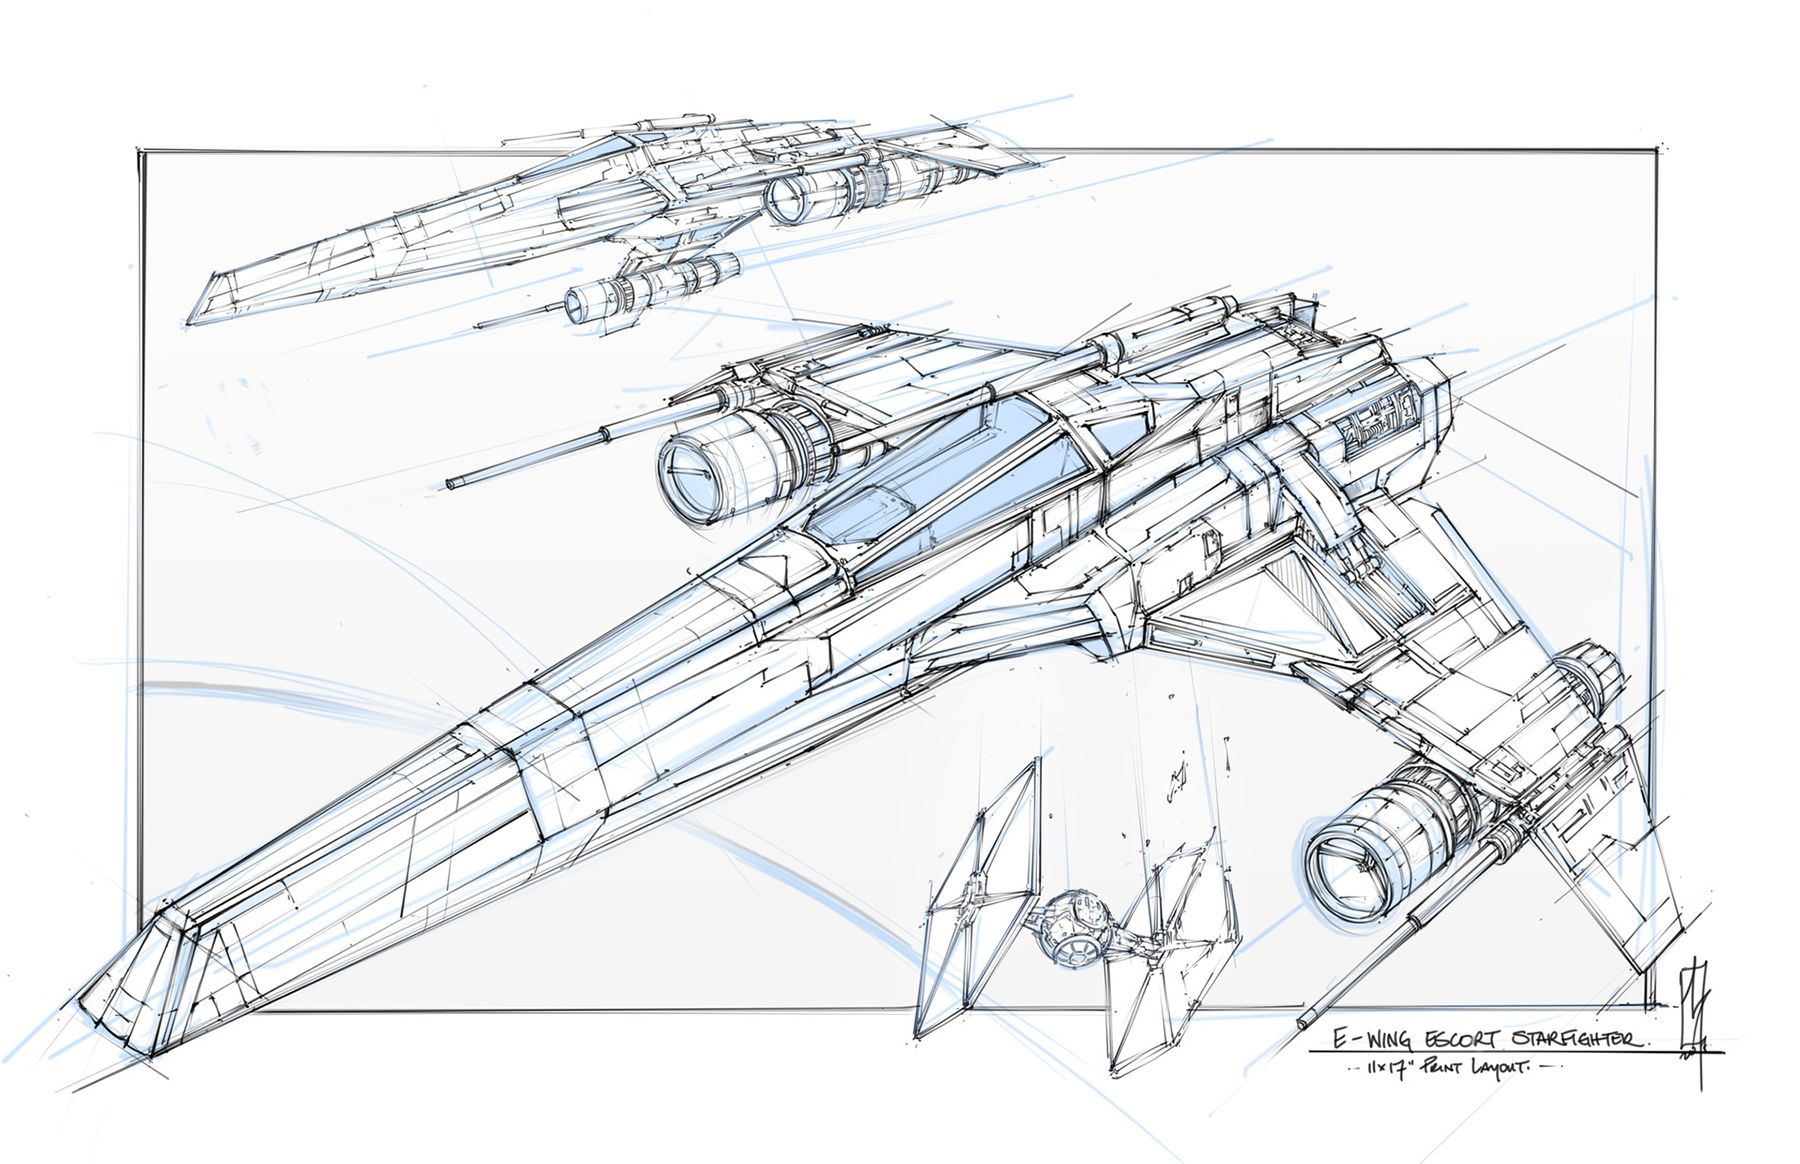 Spaceship Art By Shane Molina Keywords Star Wars X Wing Tie Fighter A Wing U Wing Digital Technical Concept Sp Star Wars Ships Spaceship Art Star Wars Poster